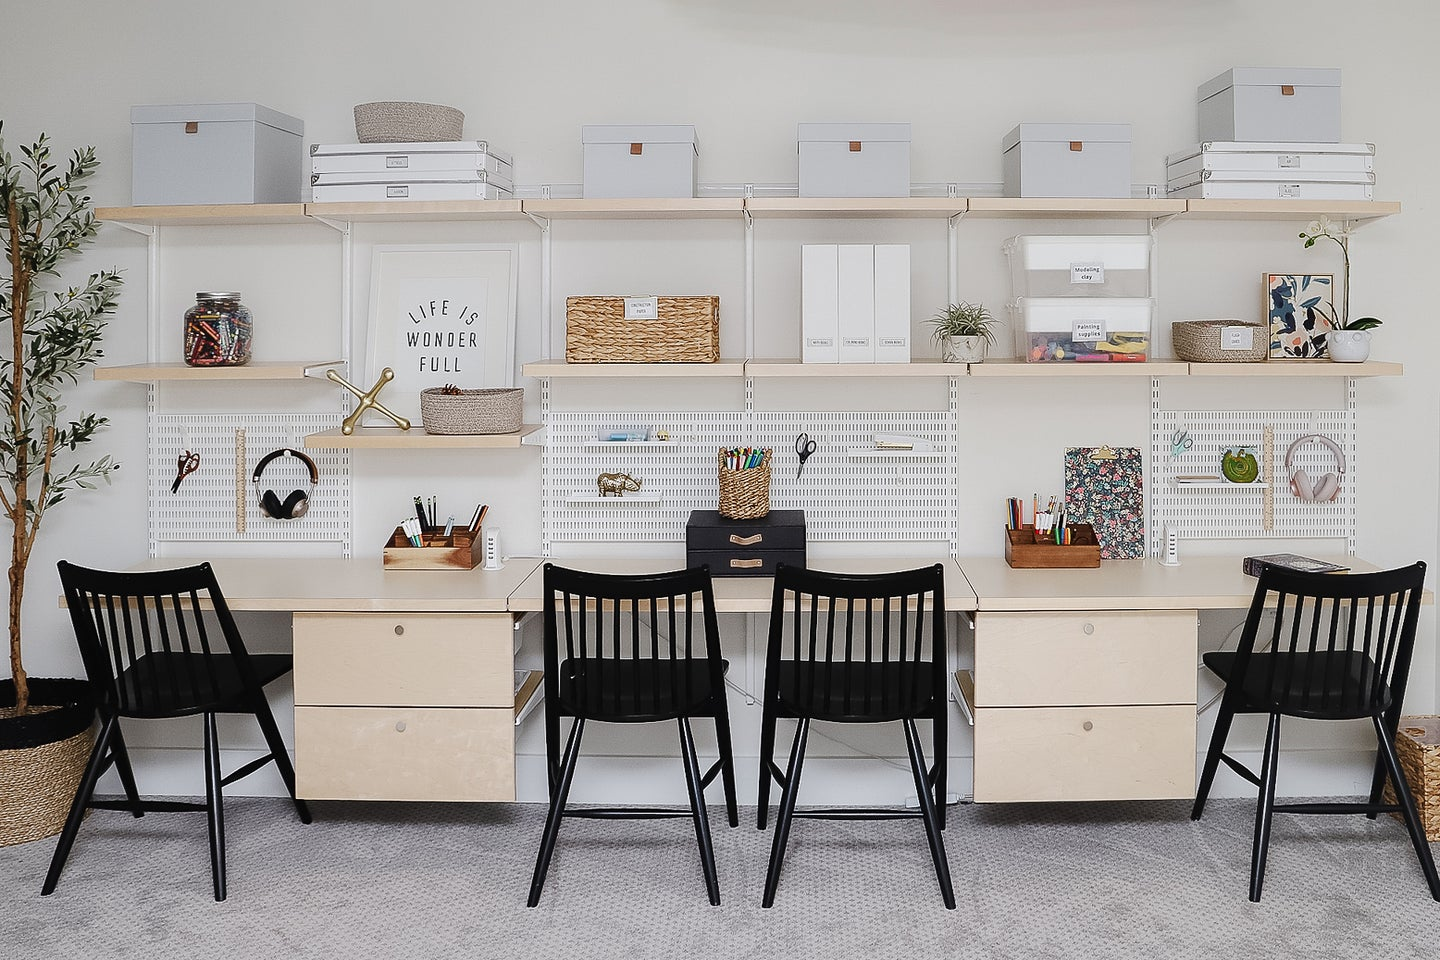 Container Store Elfa kids workstation